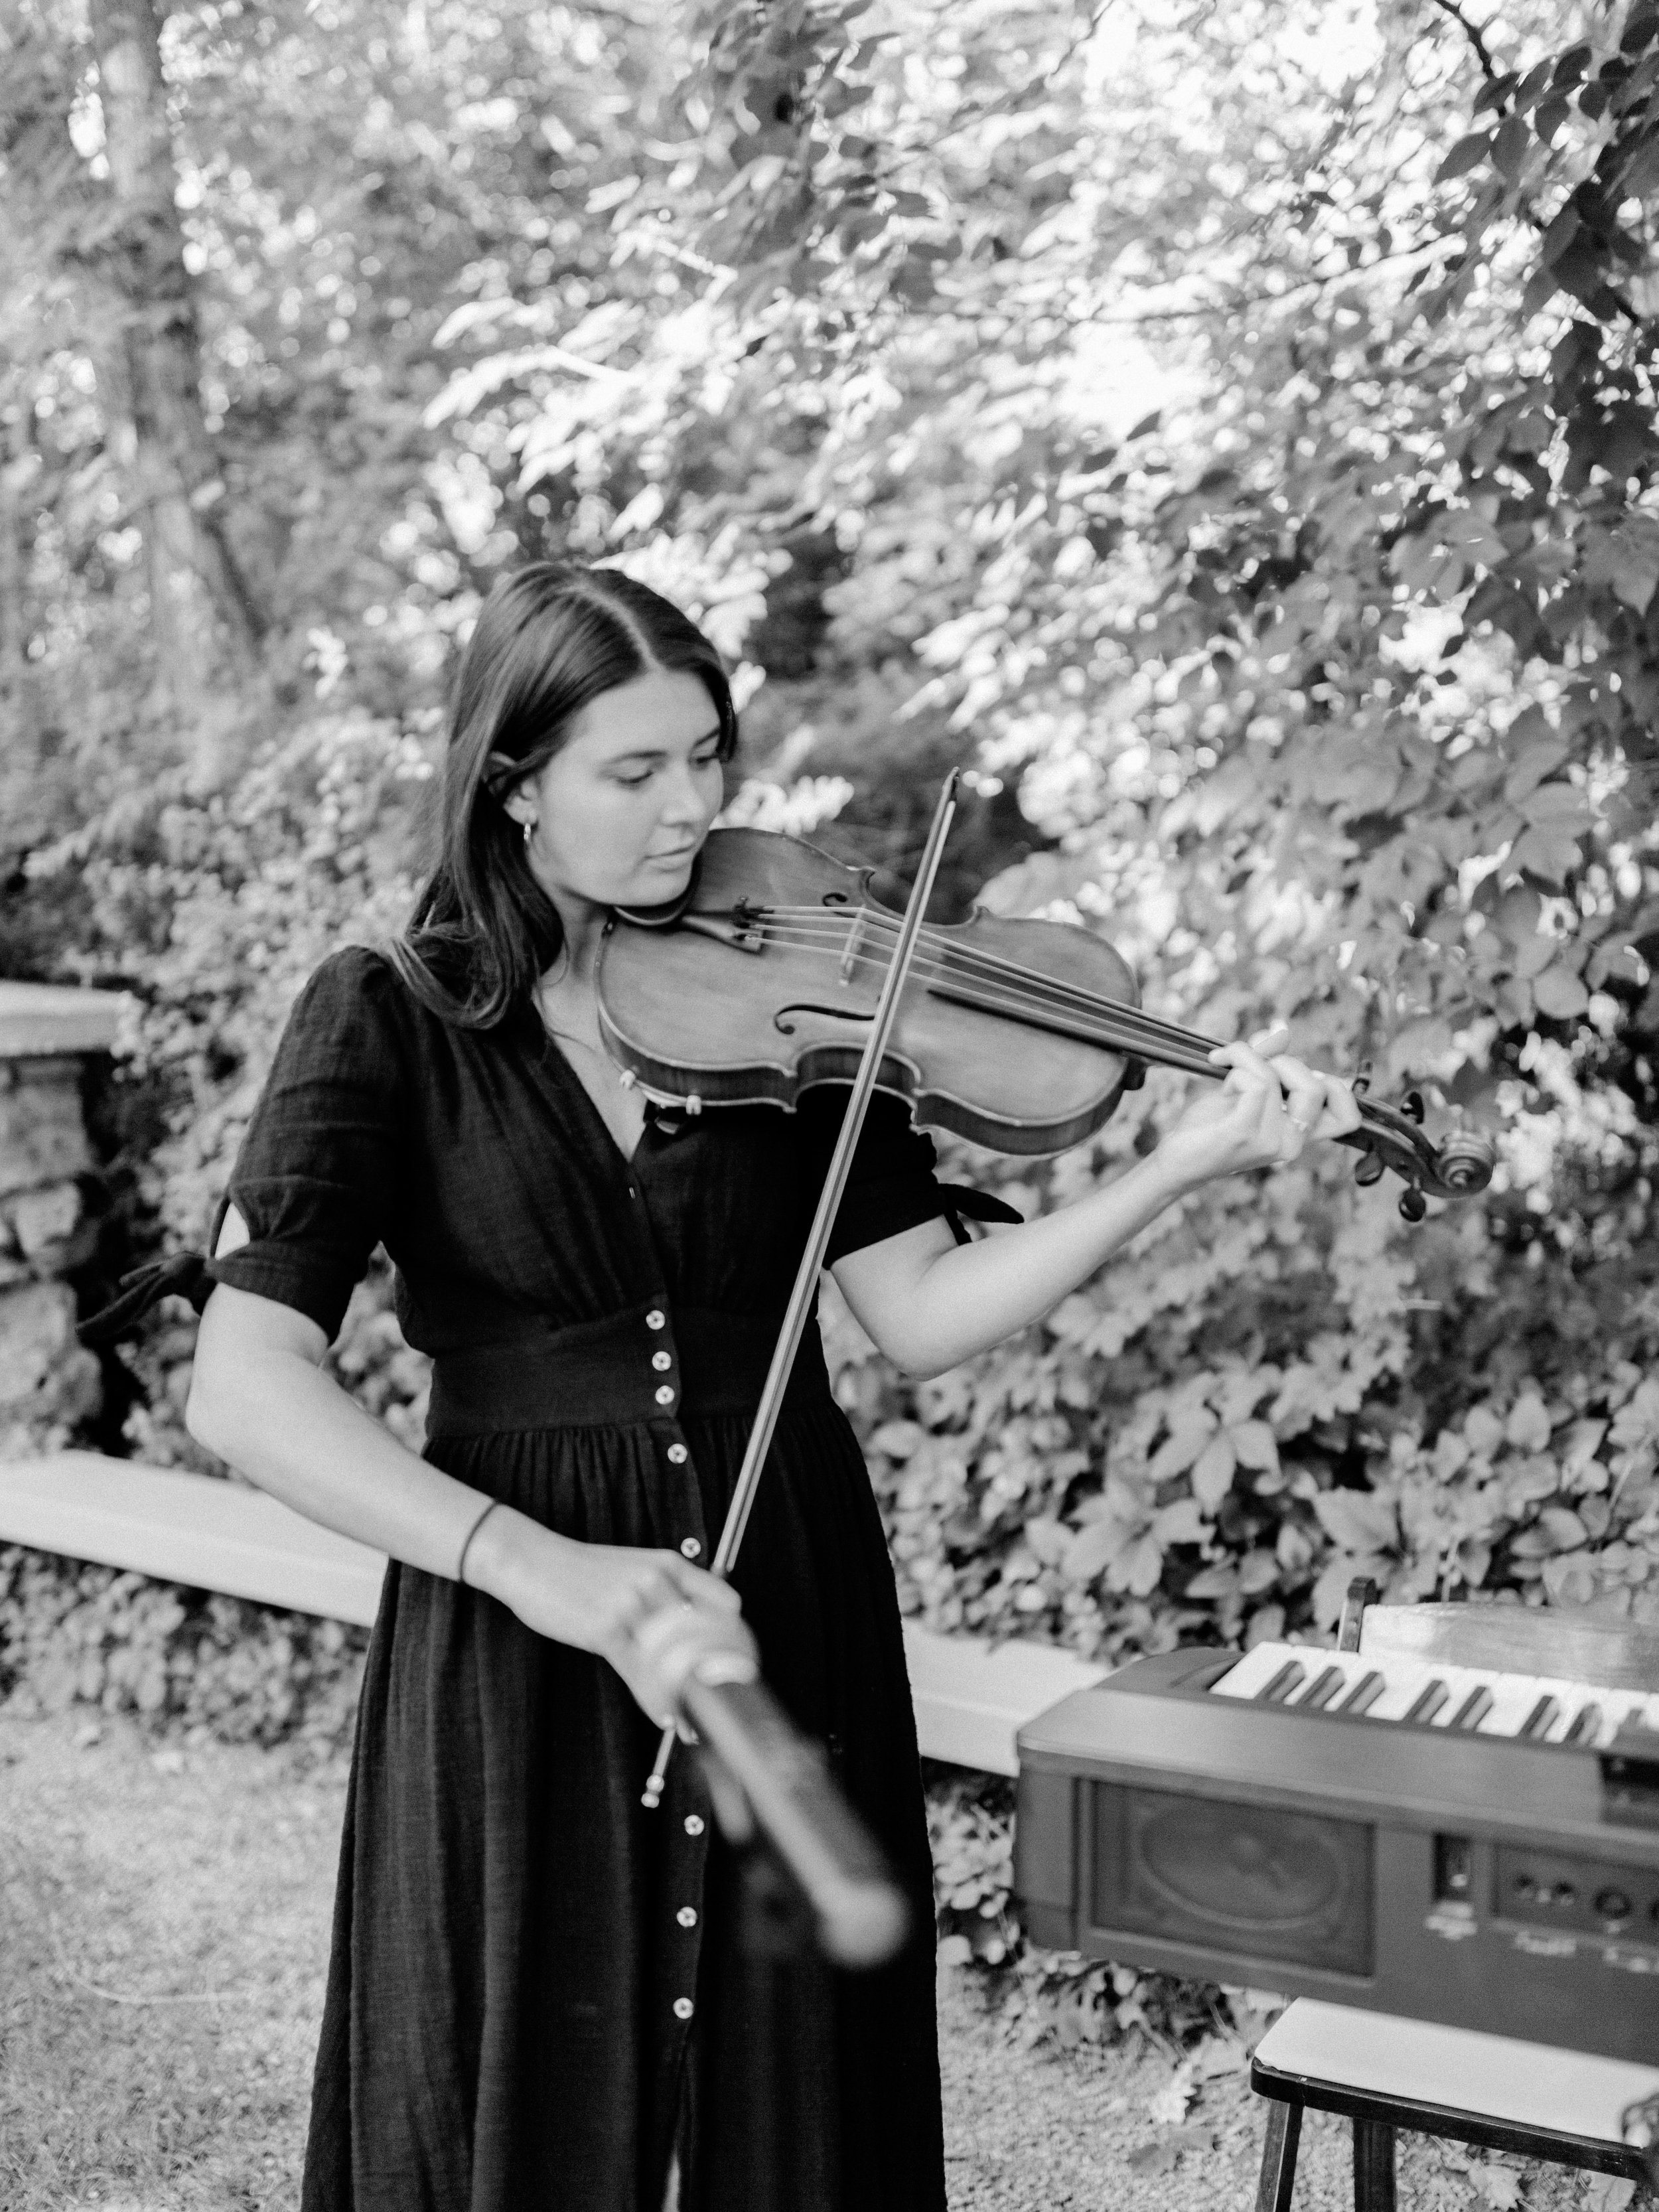 Ceremony ideas for an intimate wedding atmosphere with a violinist playing music